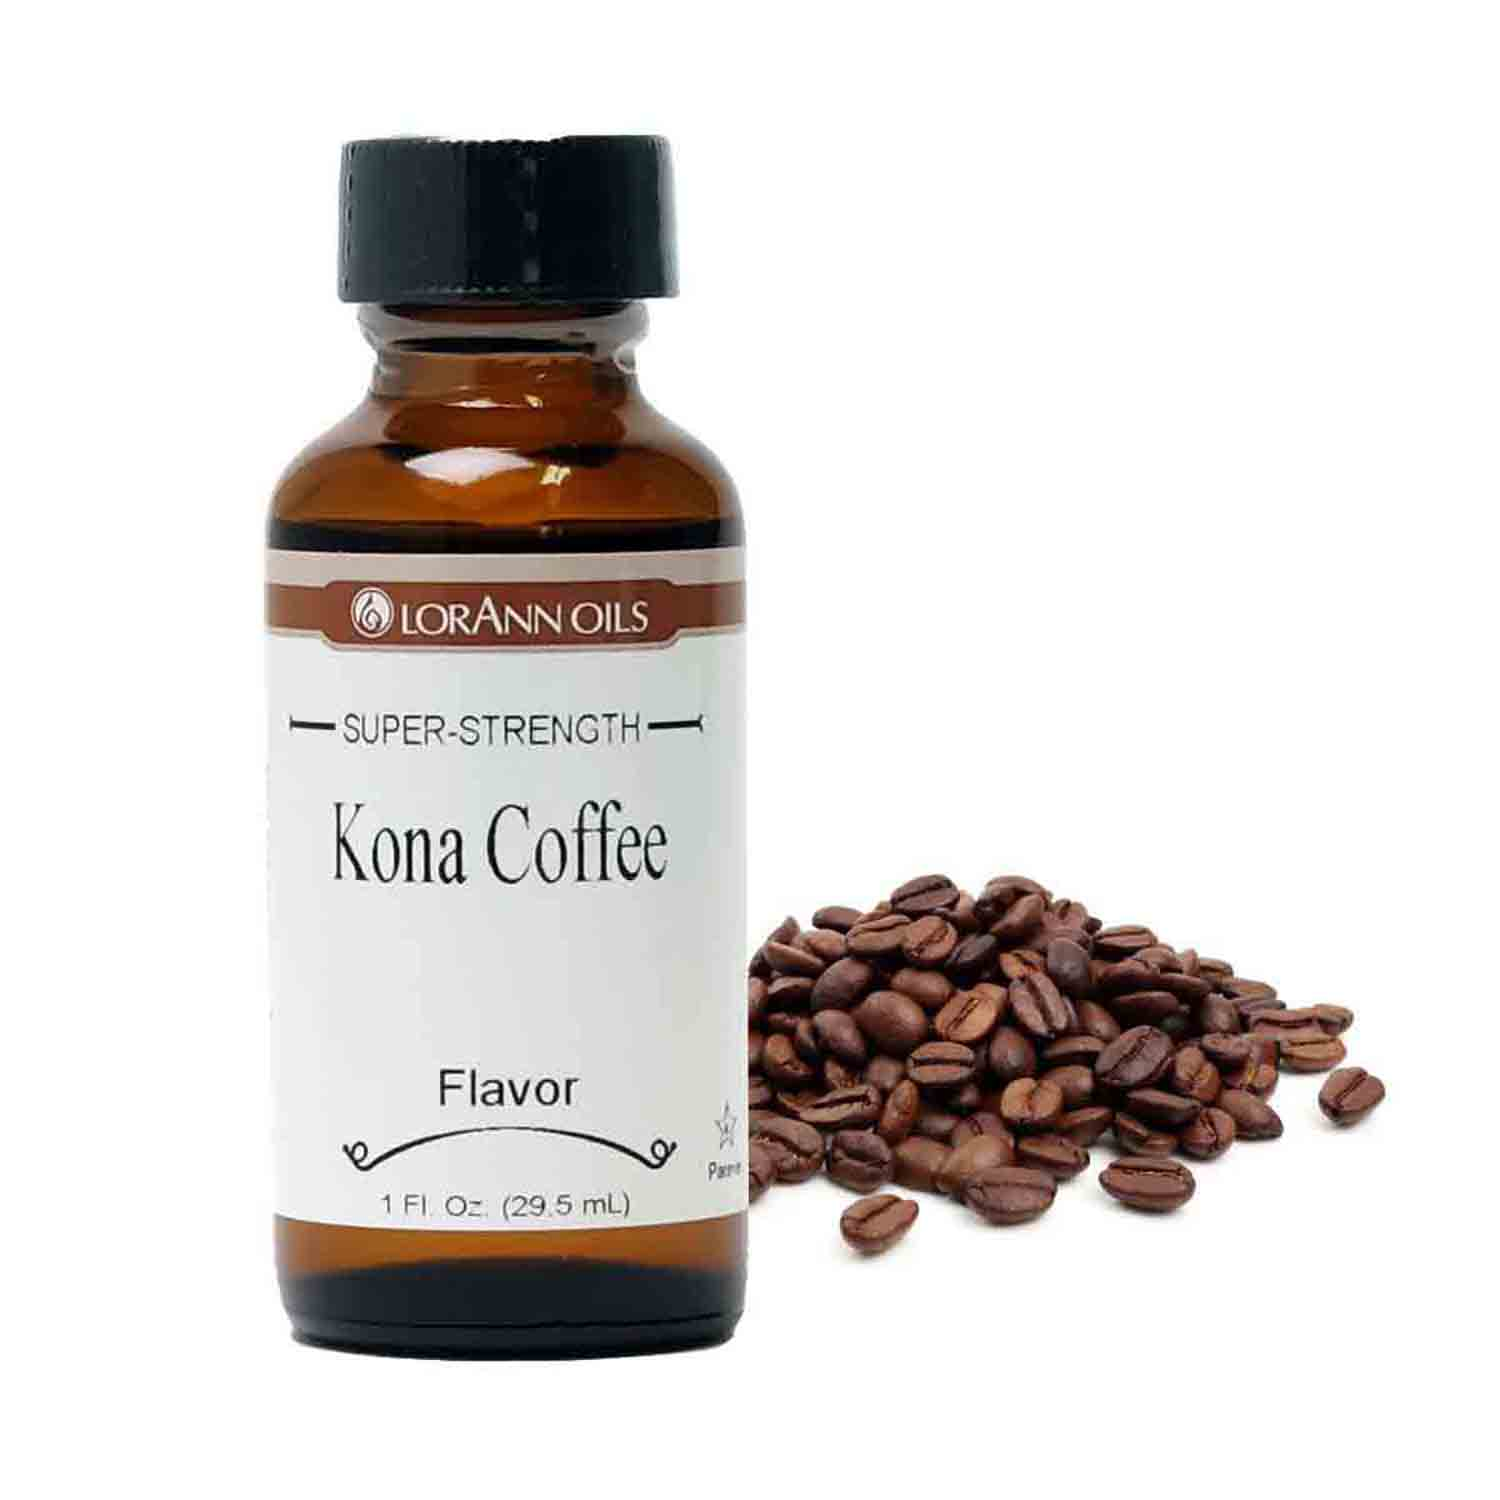 Kona Coffee (Kahlua) Super-Strength Flavor